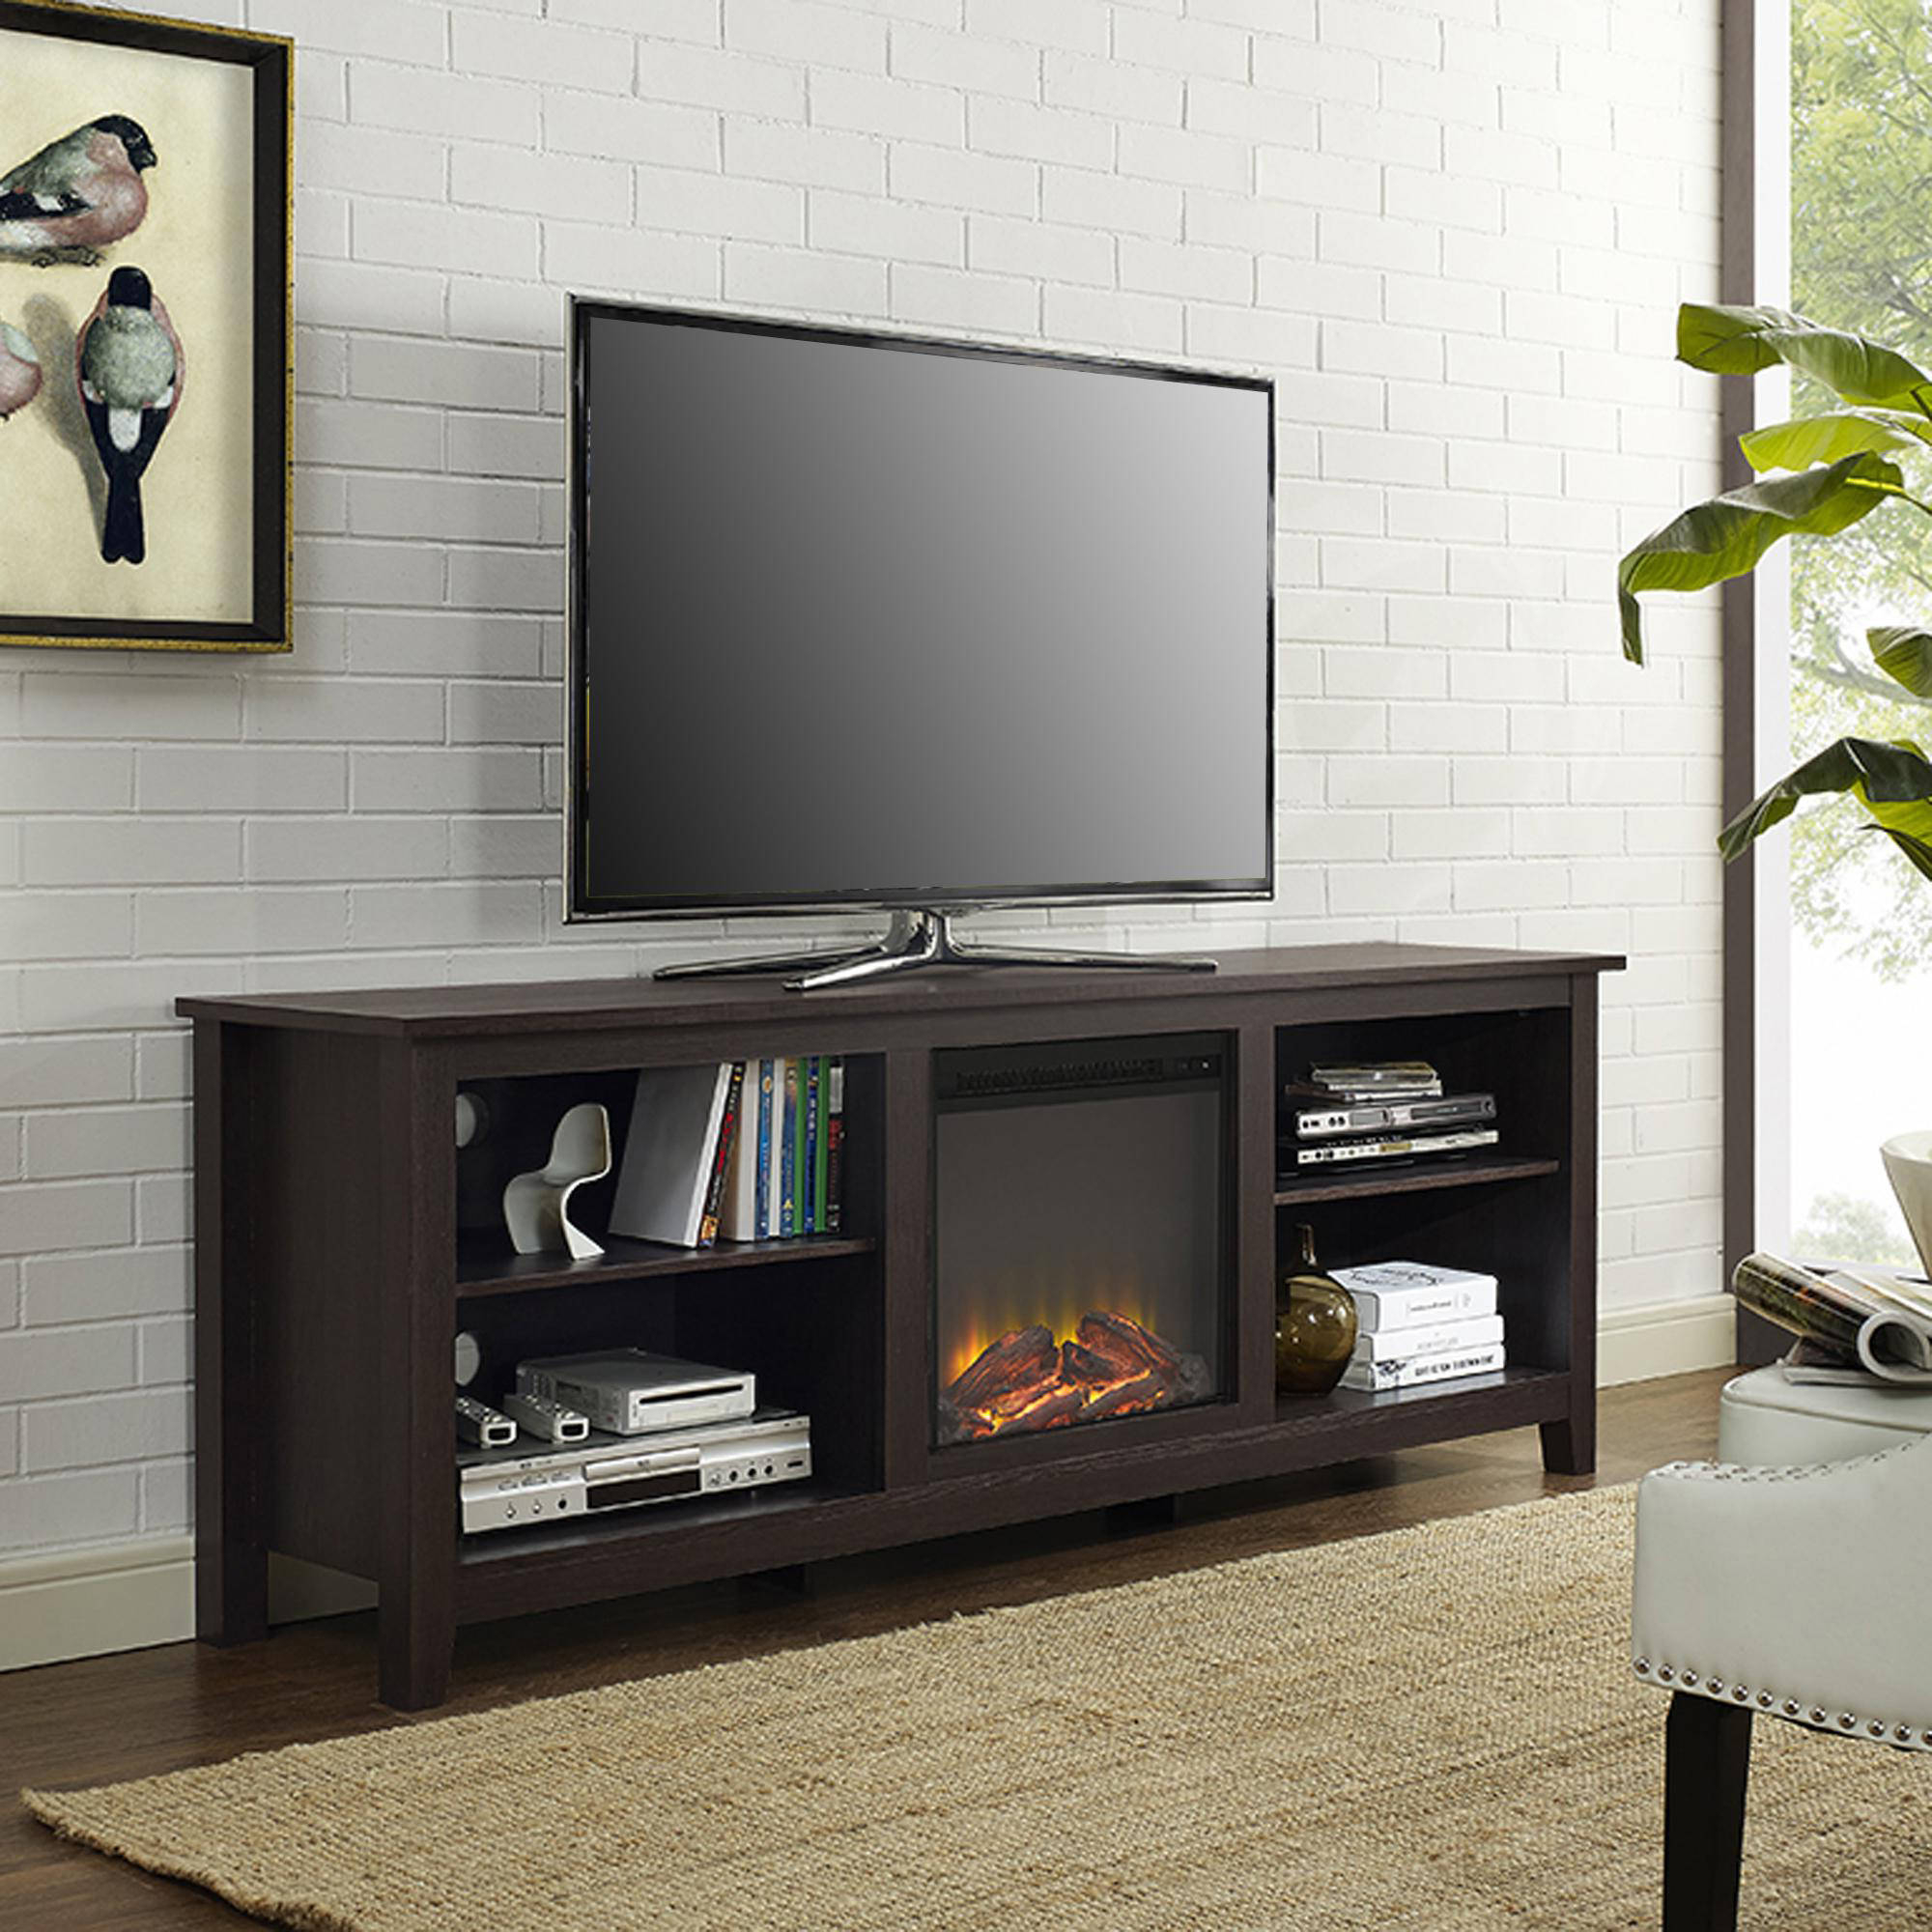 "Latest Cheap Wood Tv Stands With Regard To 70"" Fireplace Tv Media Storage Stand For Tv's Up To 75"" Espresso (View 5 of 10)"